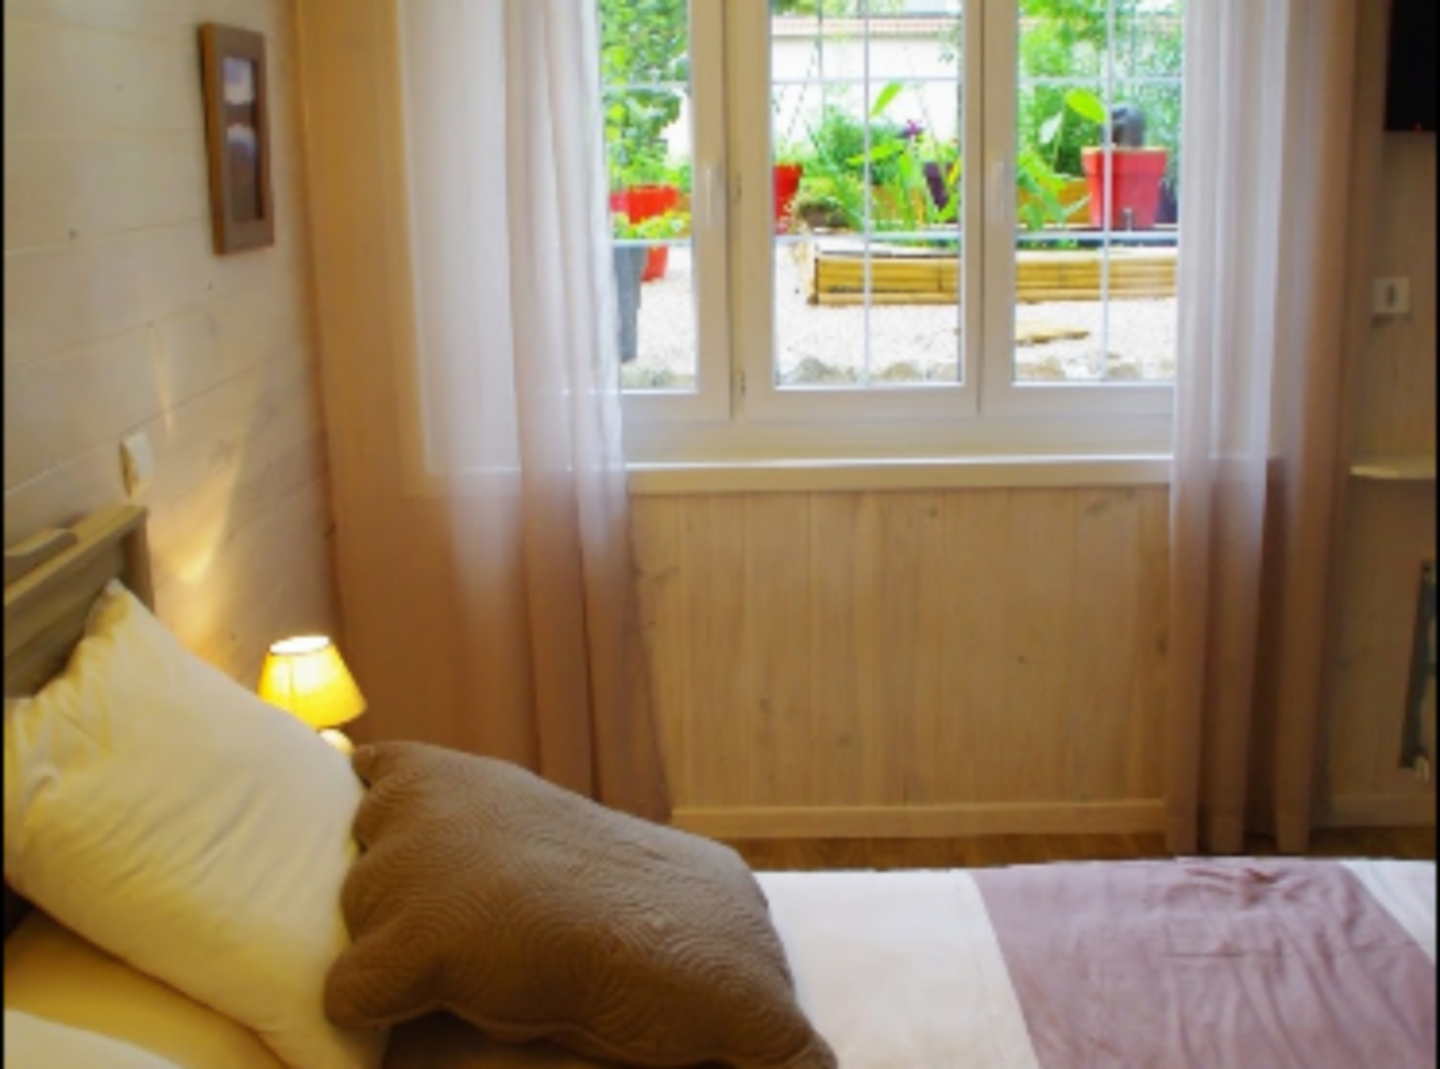 A bedroom with a bed and a window at Le relais de Grange Blanche.